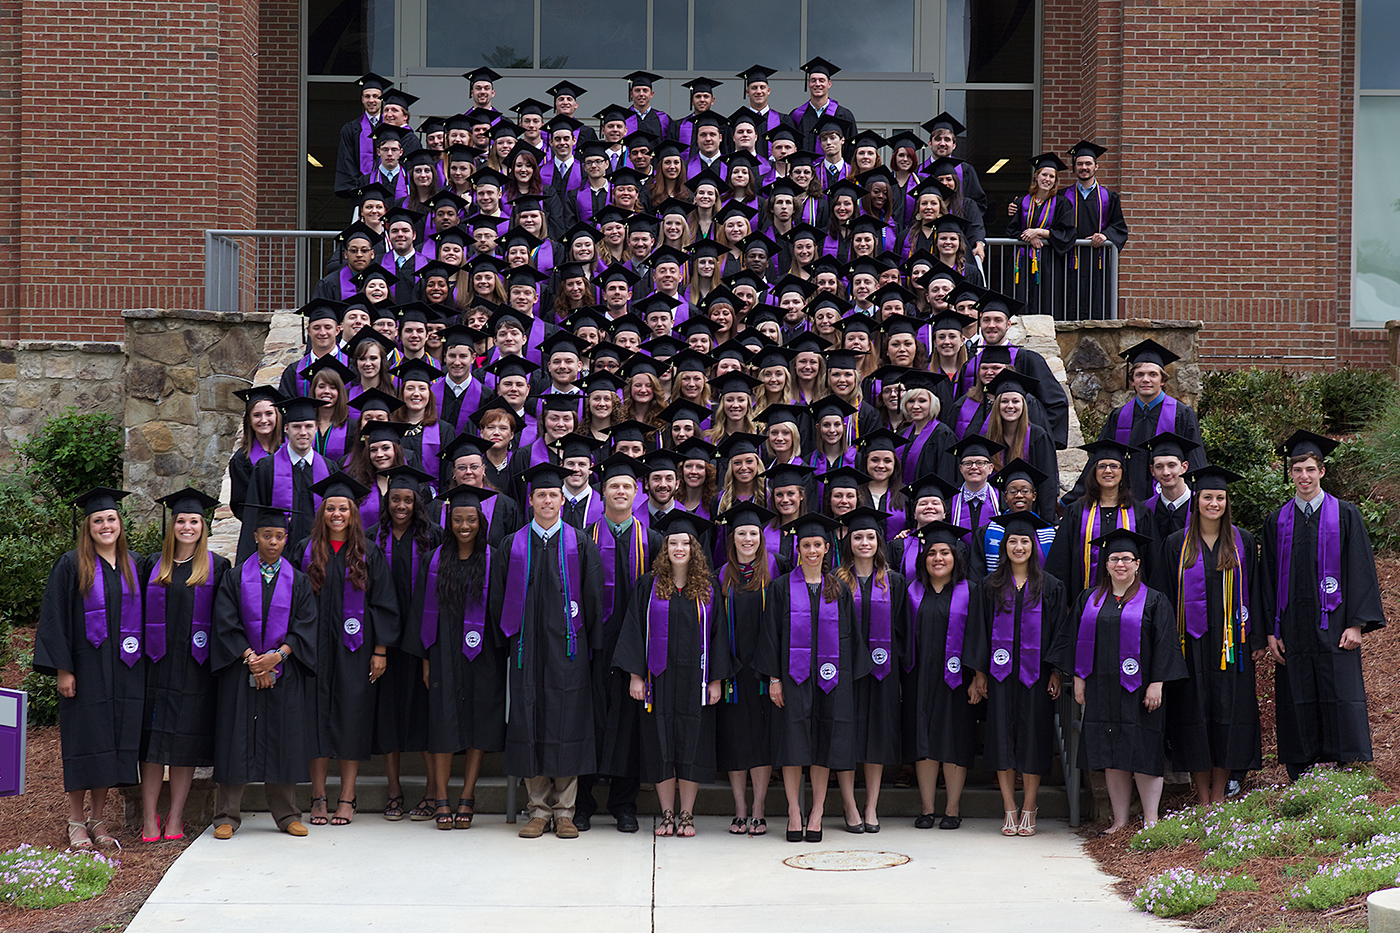 The 2014 graduates lined up on the steps in front of the Recreation and Fitness Center for a class photograph